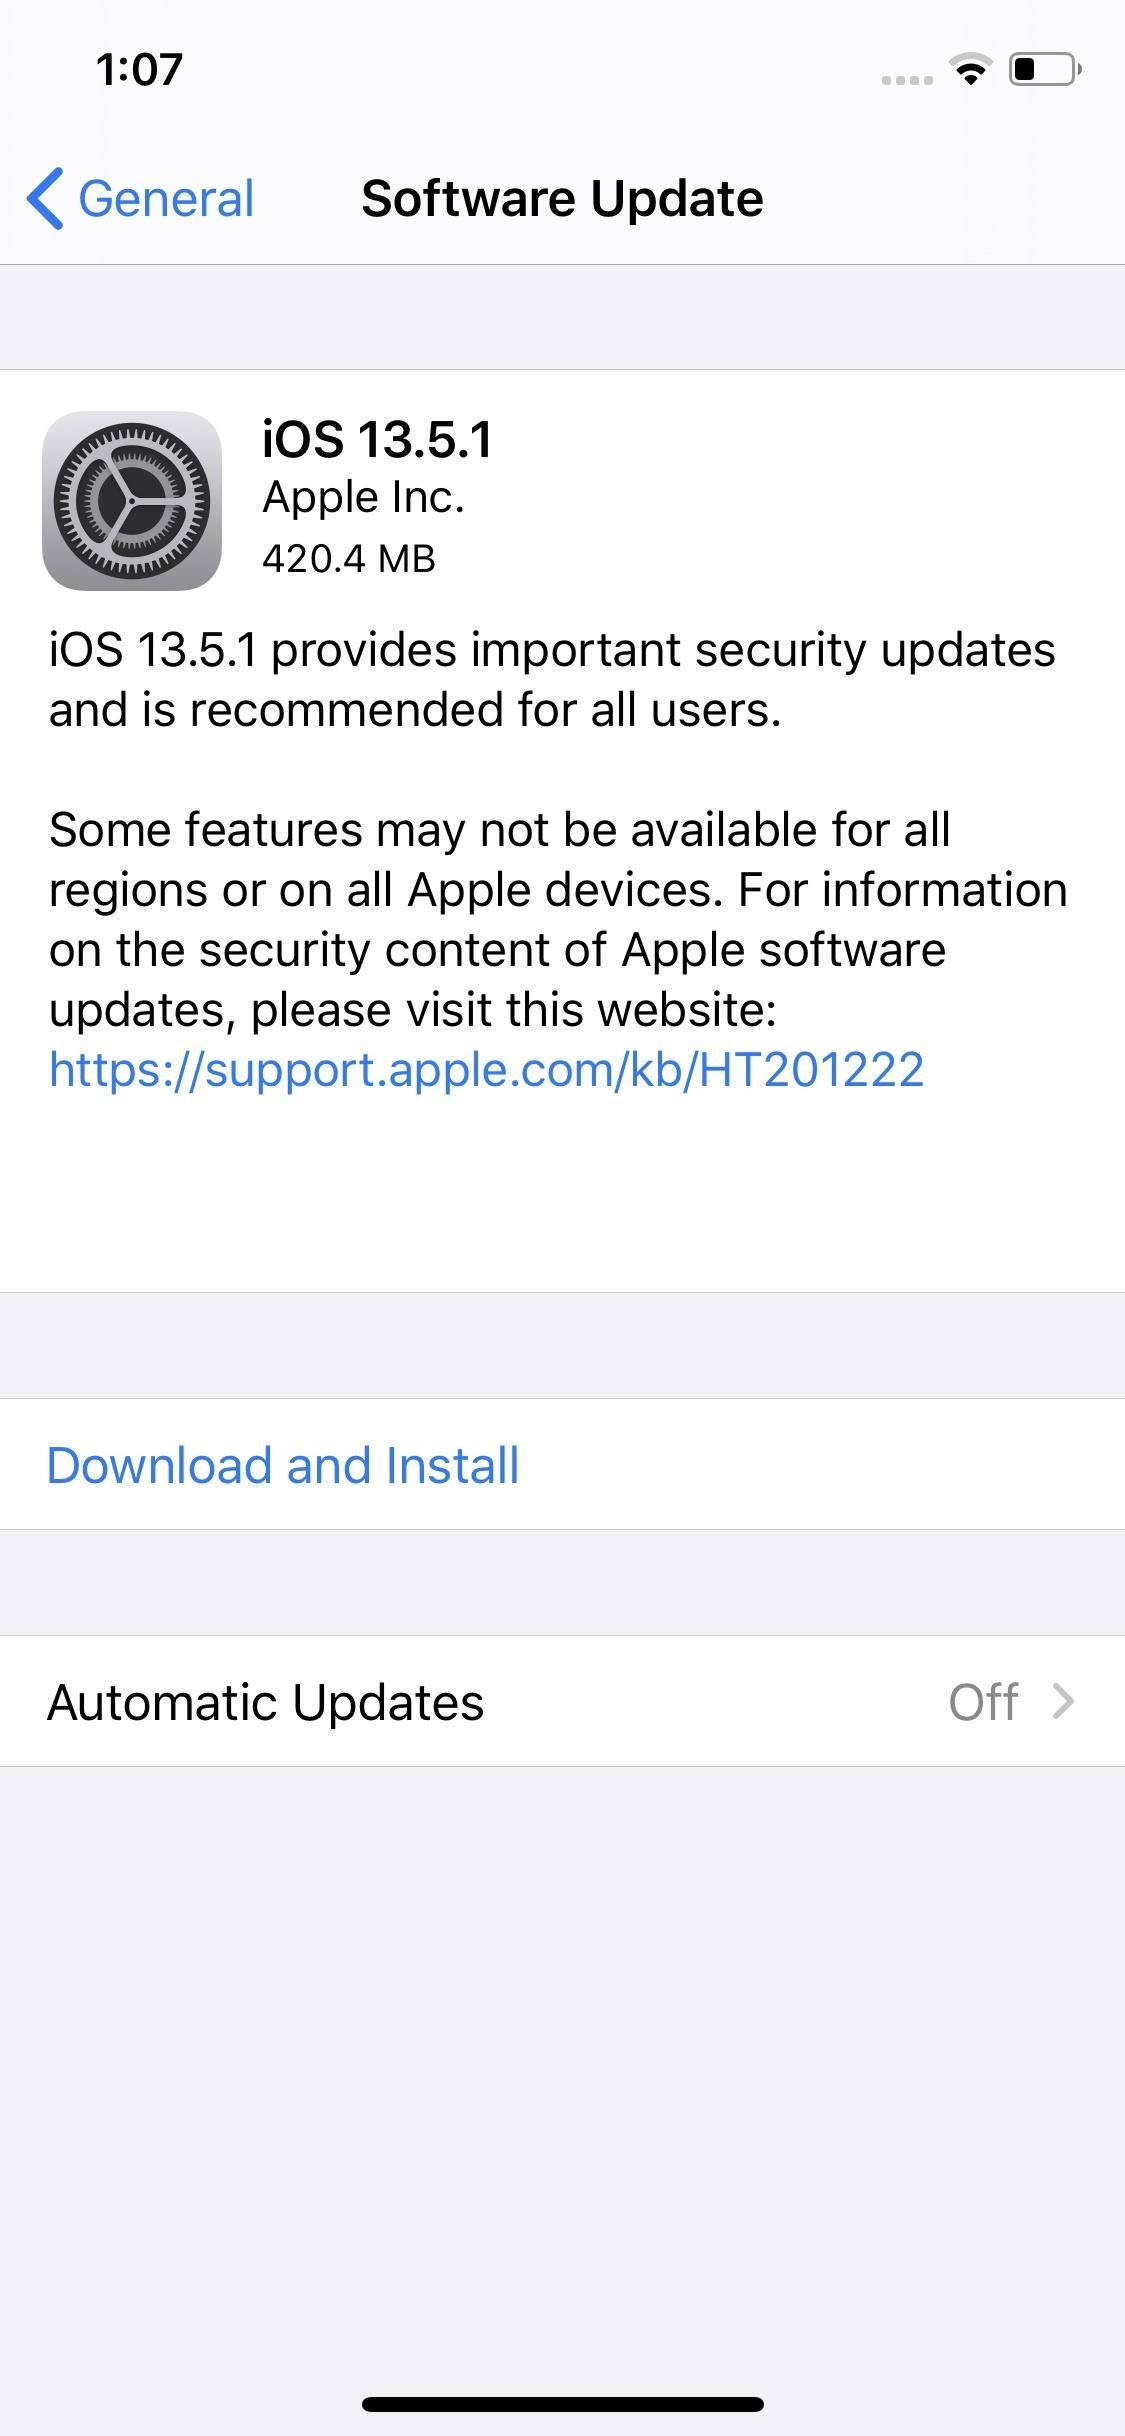 Apple Releases iOS 13.5.1 for iPhone with 'Important Security Updates'